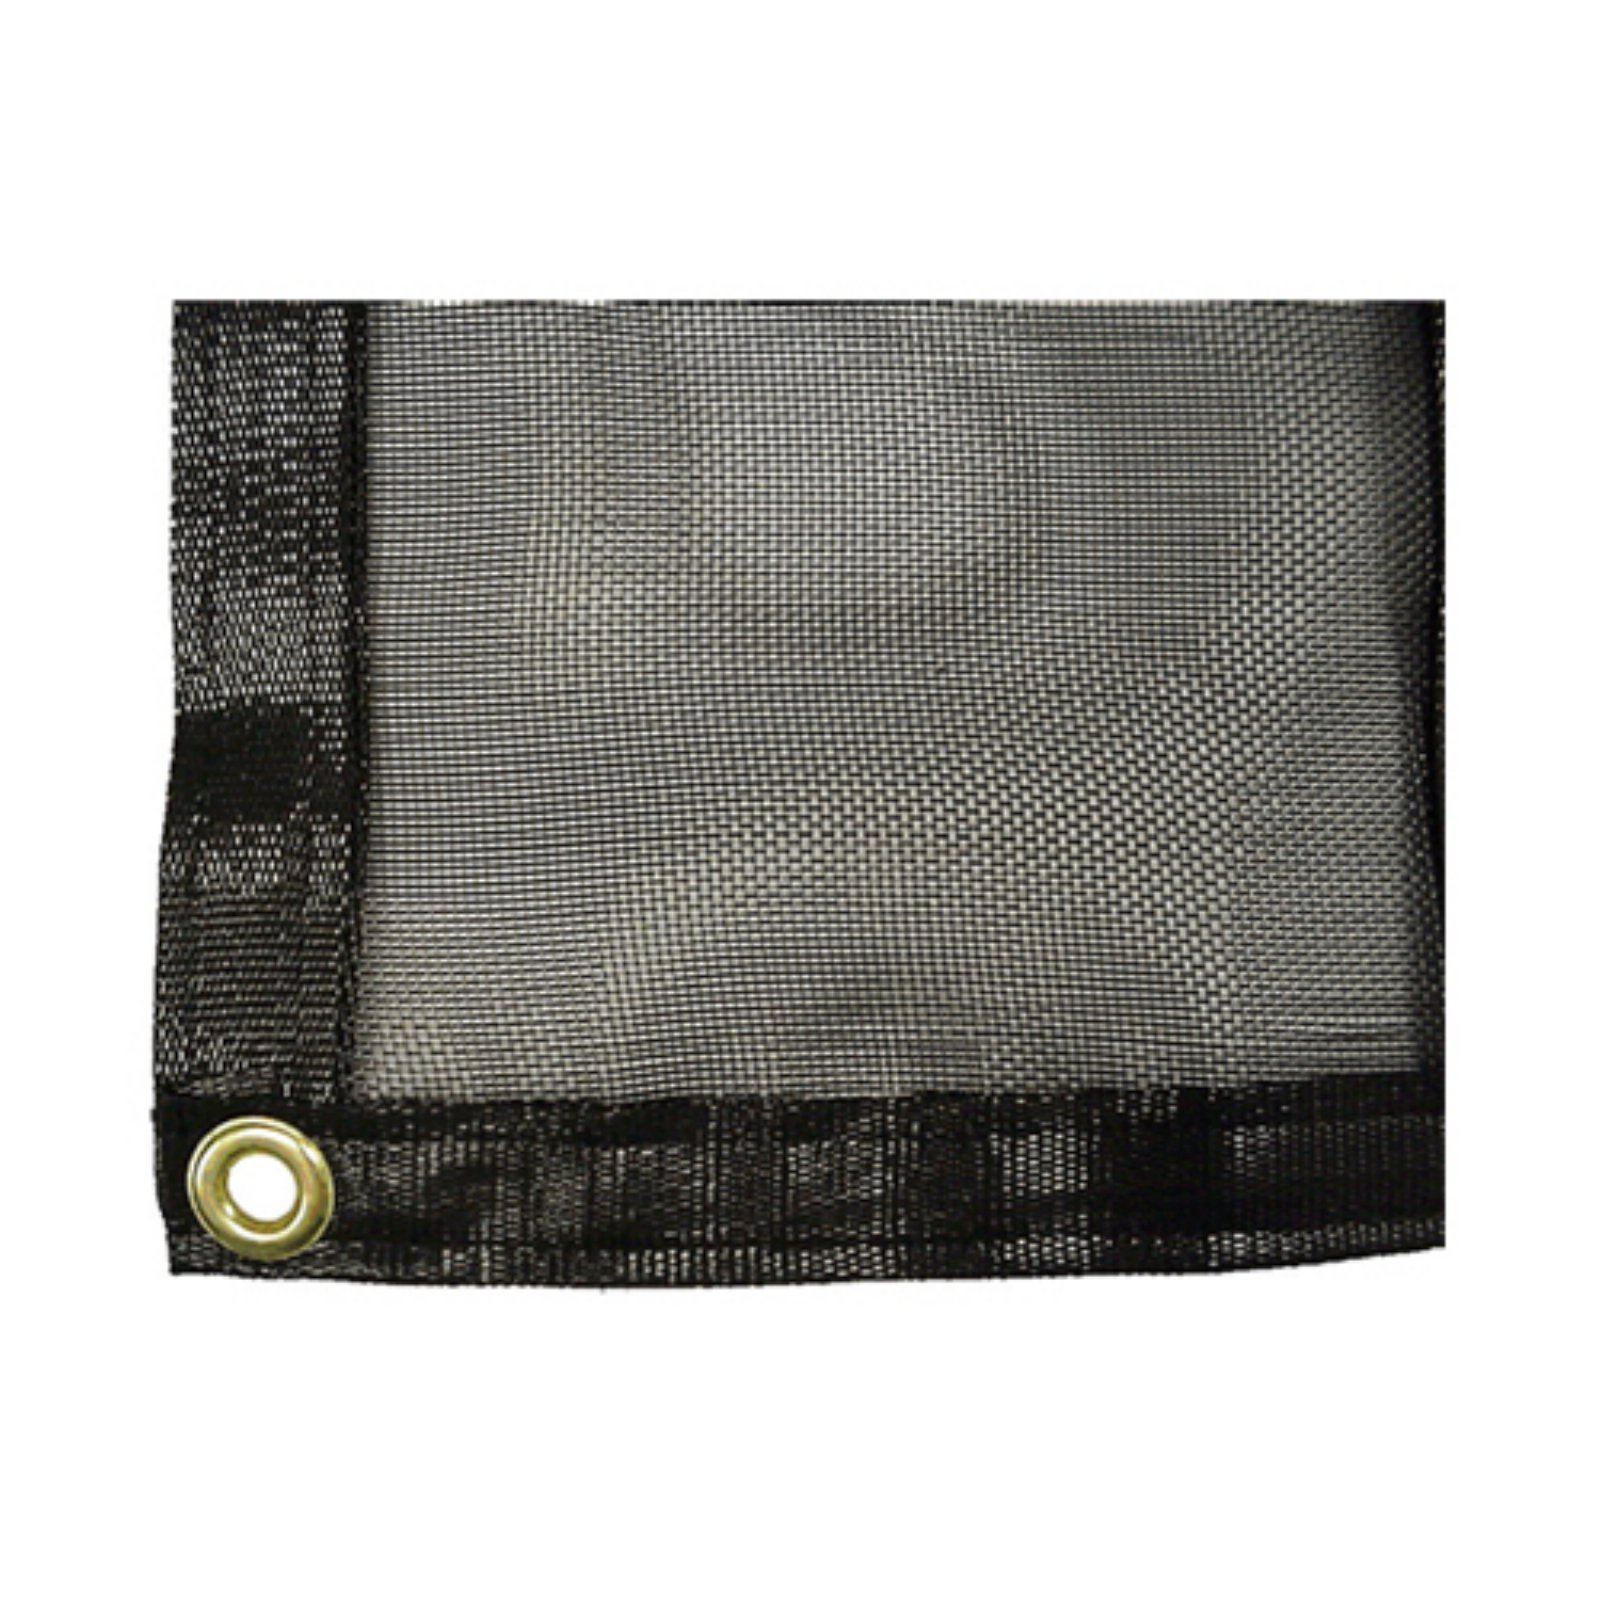 Riverstone Shade Cloth System with Corner Grommets - 6 x 12 ft.